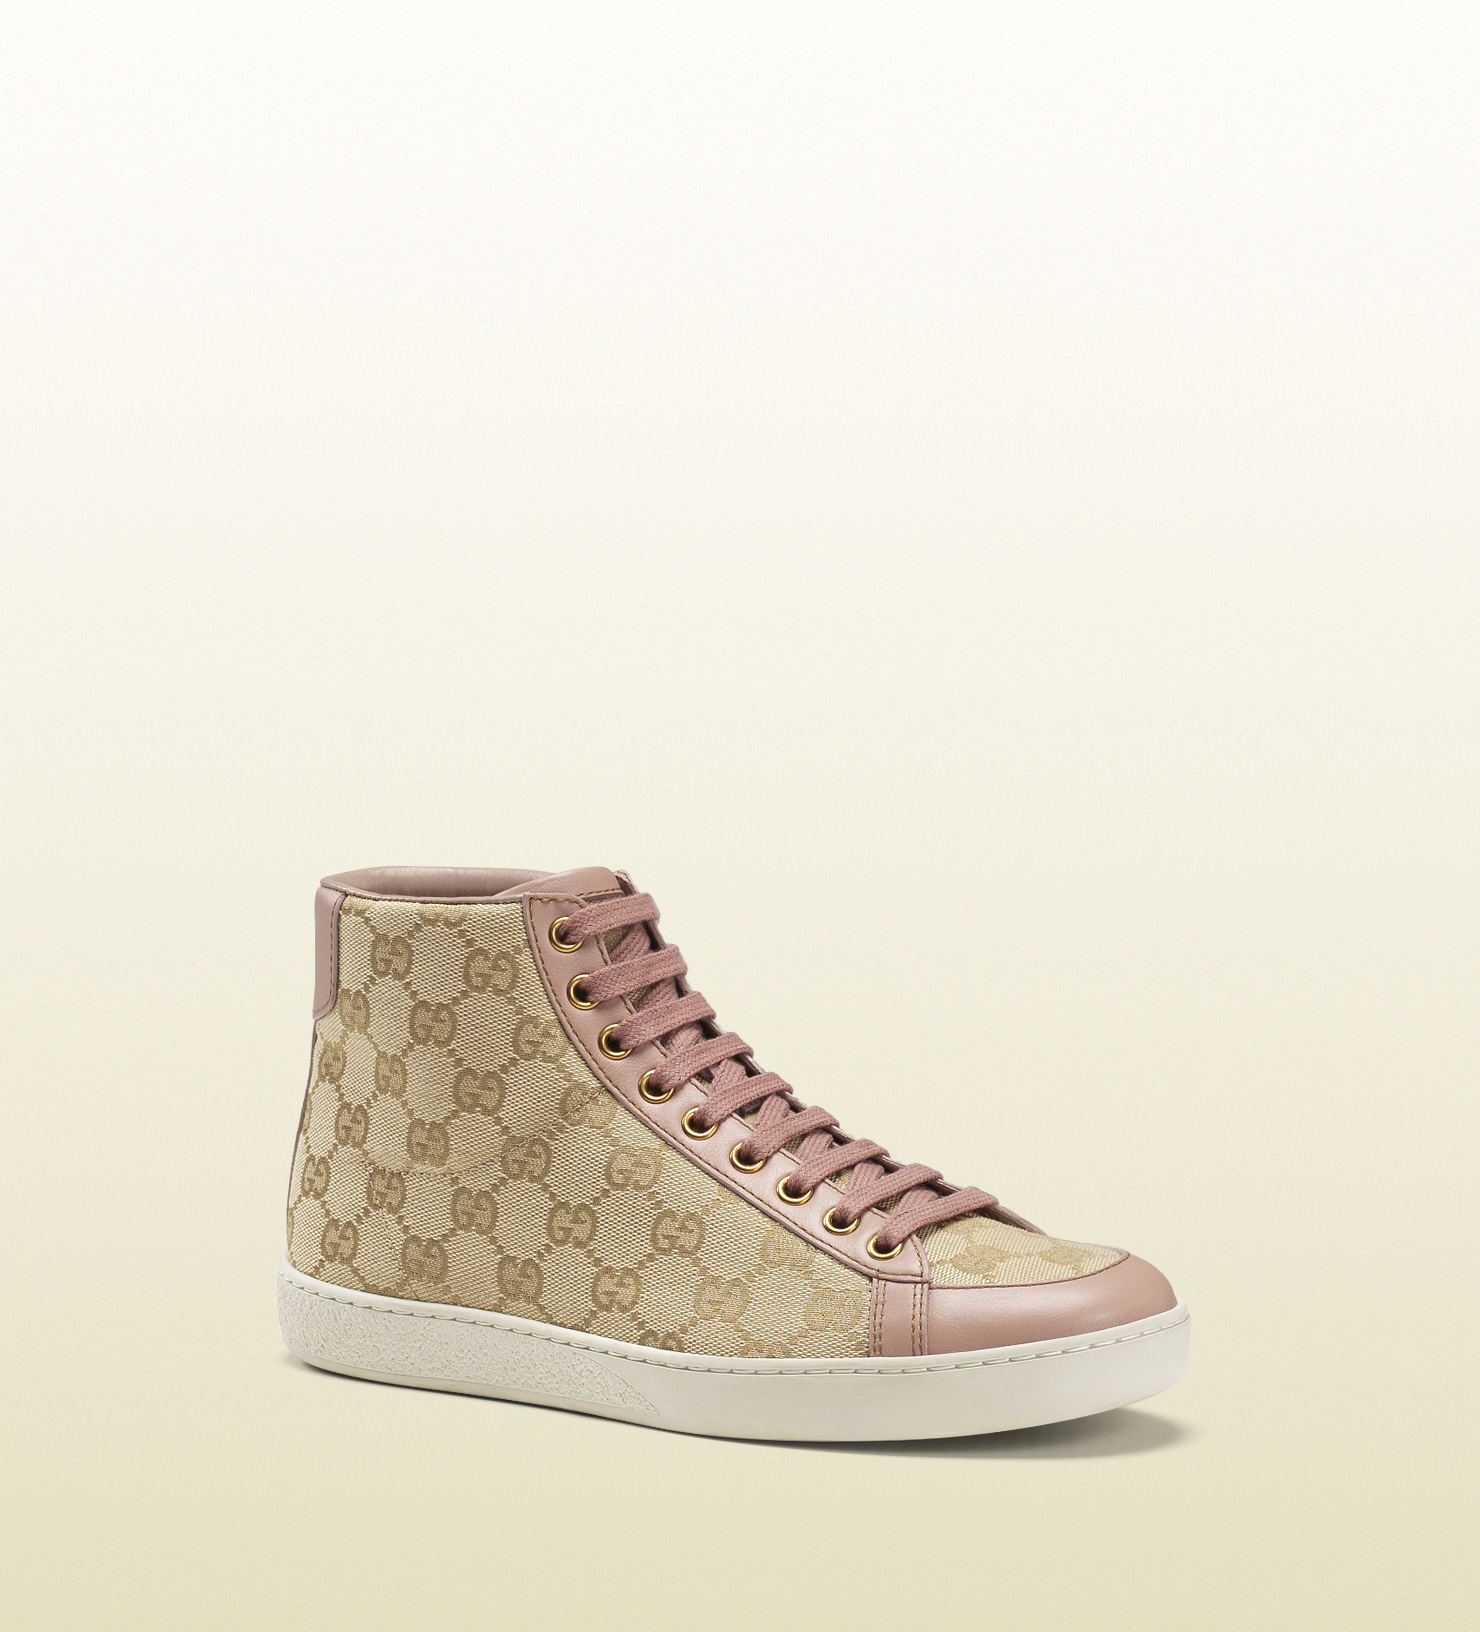 9ad97354cd2282 Gucci Brooklyn Original Gg Canvas High-top Sneaker in Natural for ...